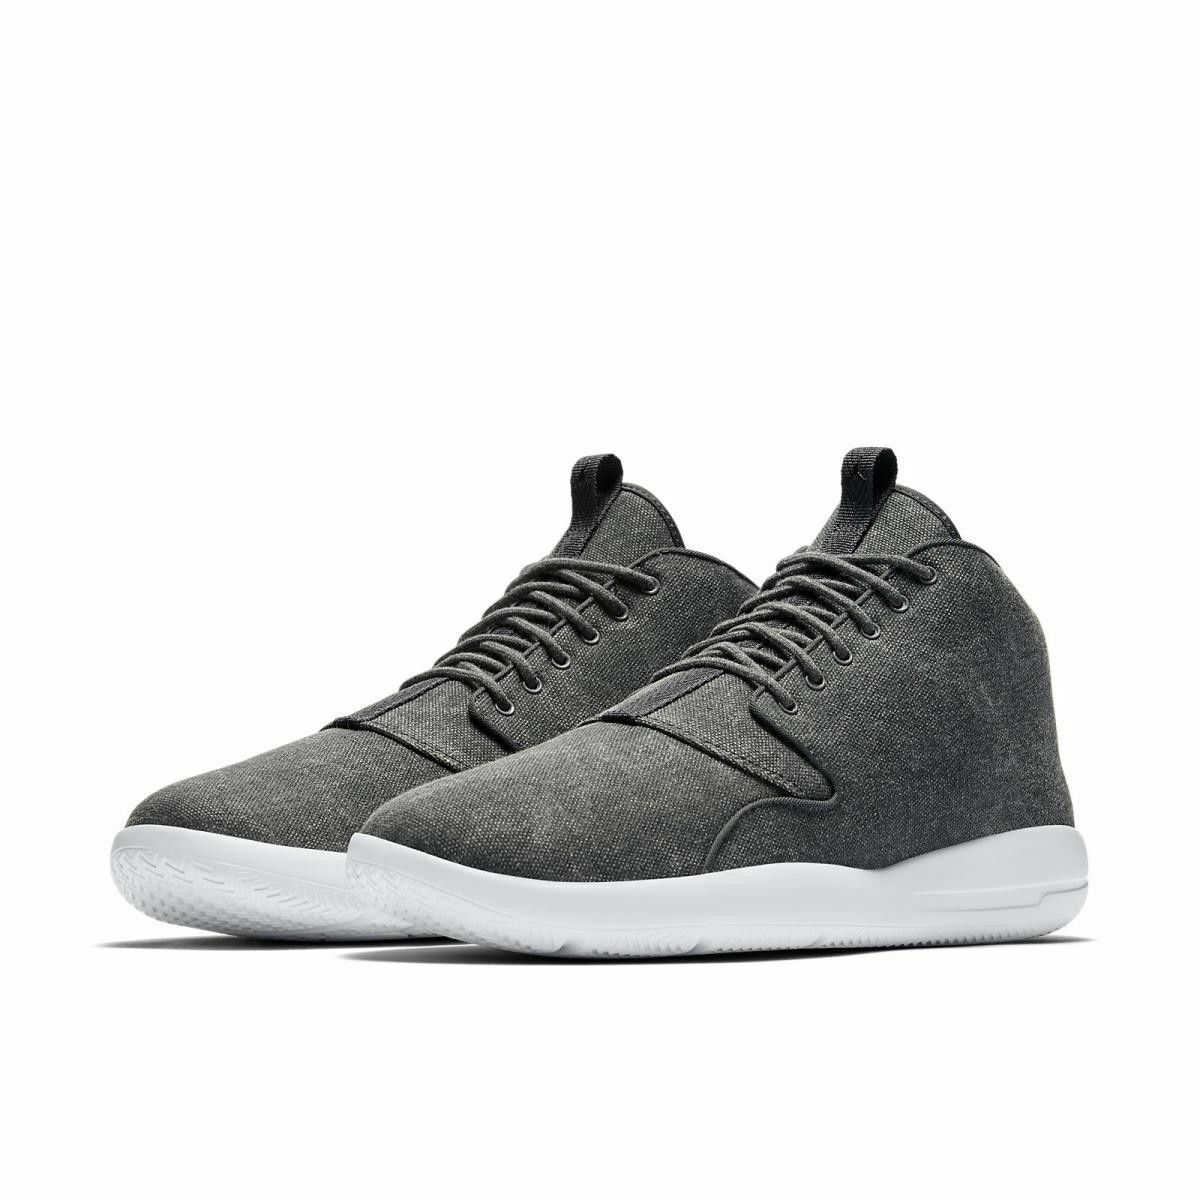 NIKE AIR MEN JORDAN ECLIPSE CHUKKA MID MEN AIR SHOES ANTHRACITE 881453-006 SIZE 8.5 NEW bff53a